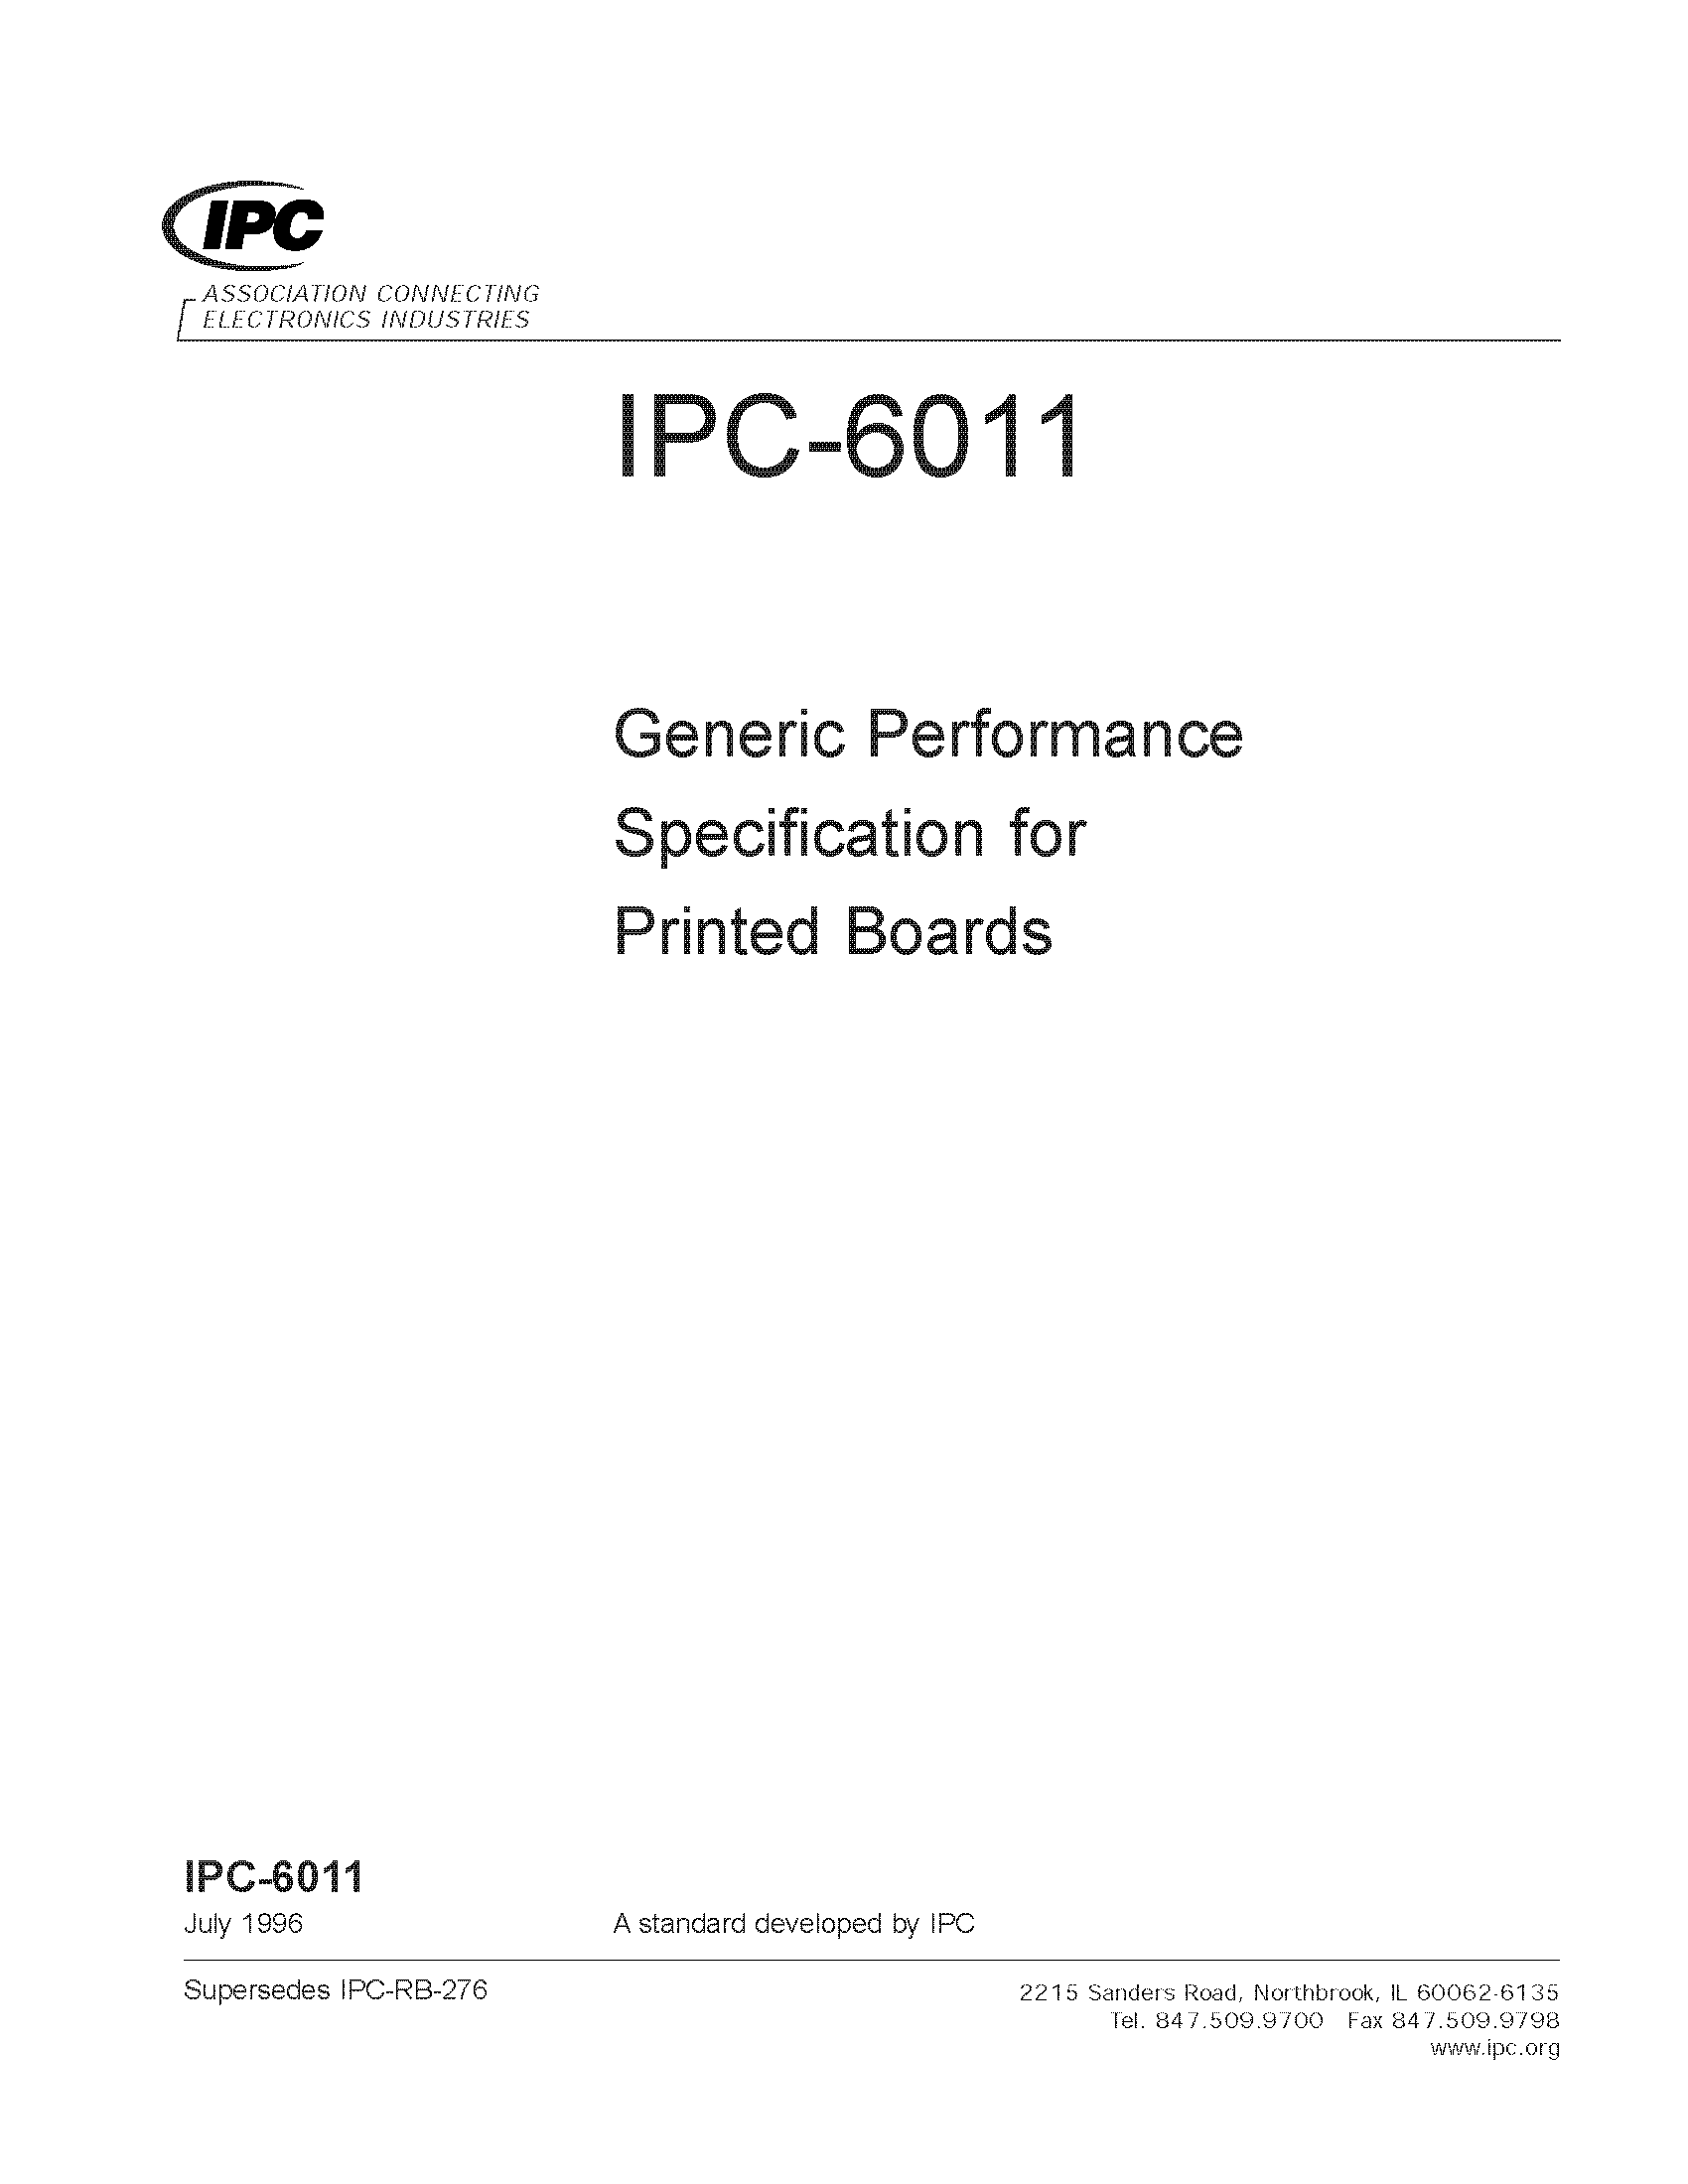 IPC-6011 Generic Performance Specification for Printed Boards (プリント基板の一般要求仕様)